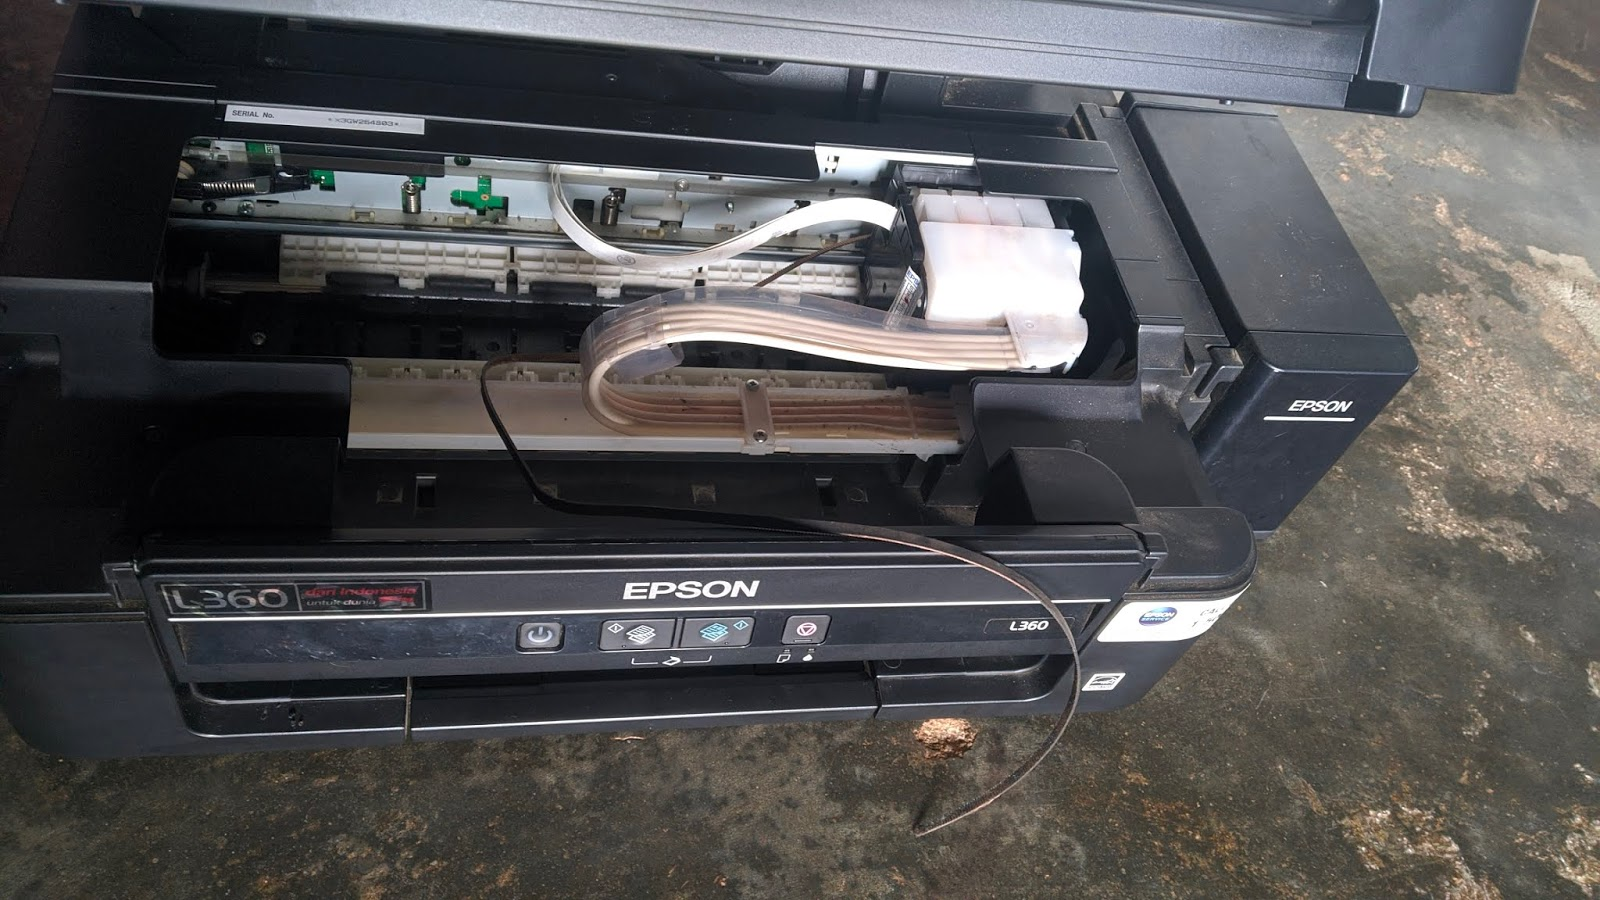 Mengganti Timing Belt Epson L360 Putus